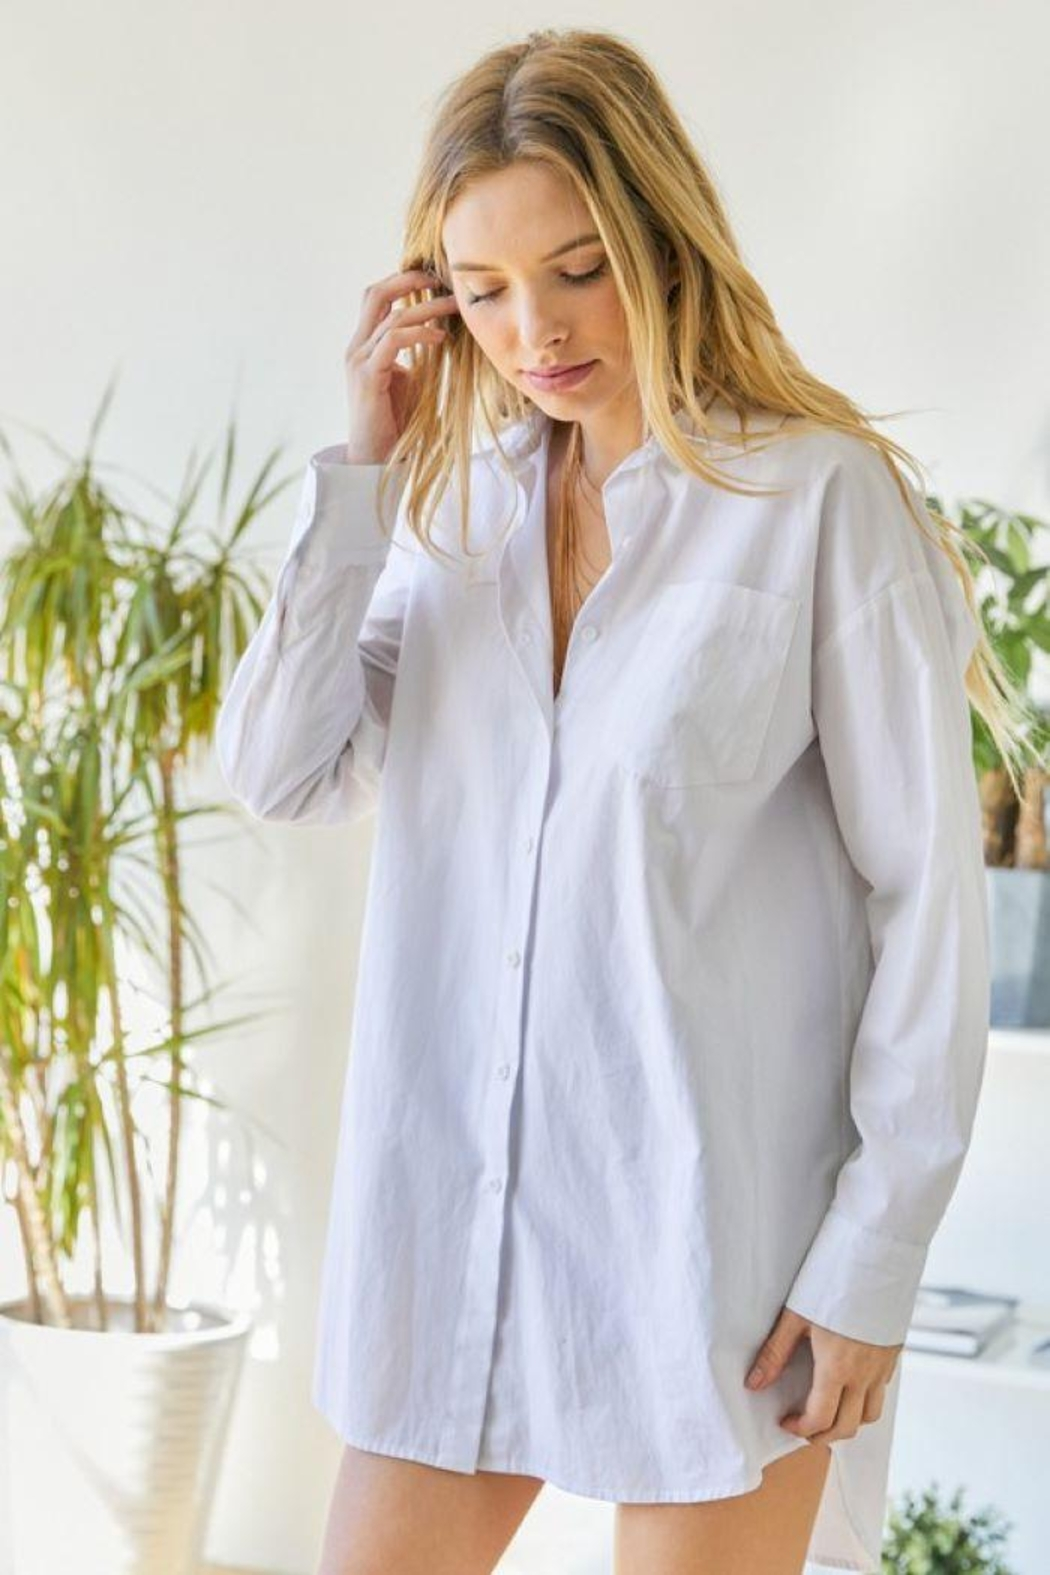 hers and mine Oversized Button Down Shirt - Main Image